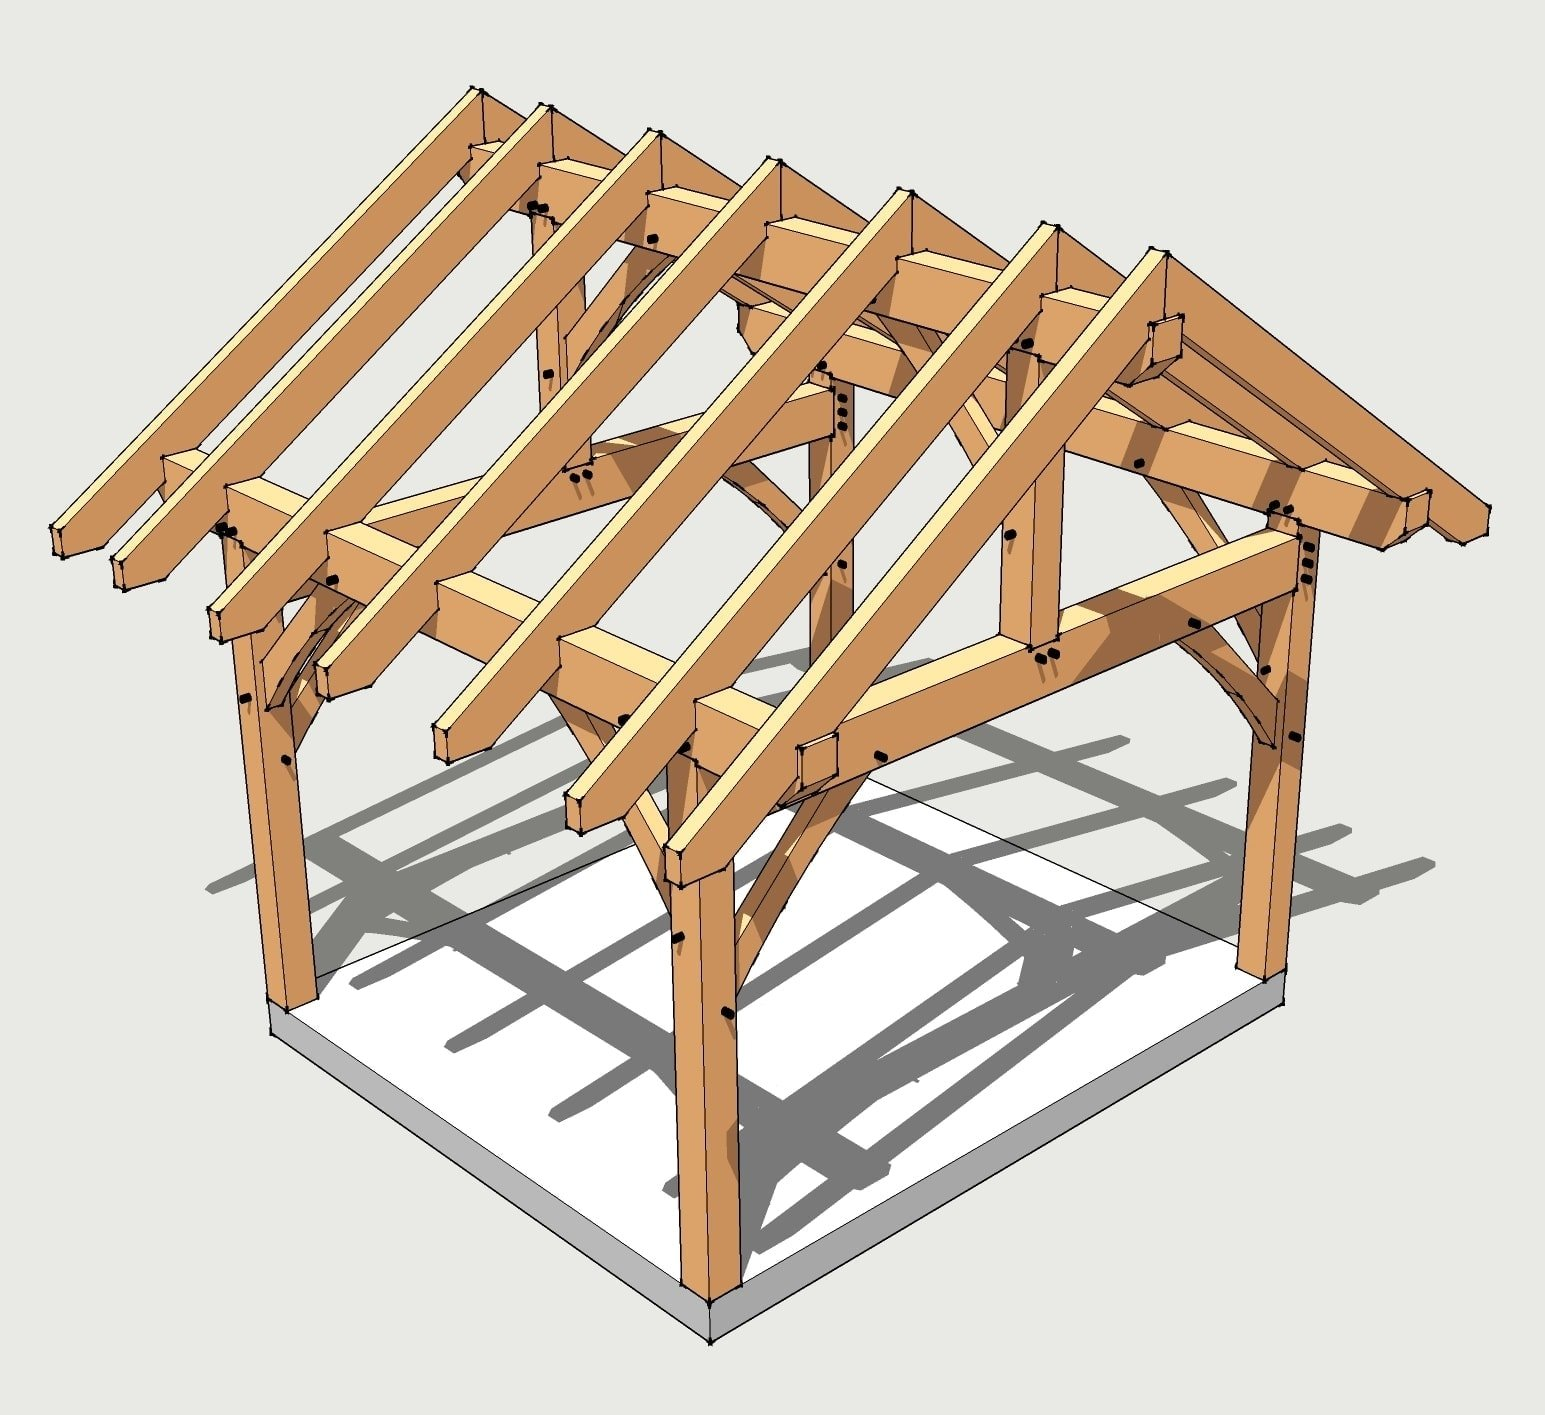 12x14 timber frame plan timber frame hq A frame barn plans